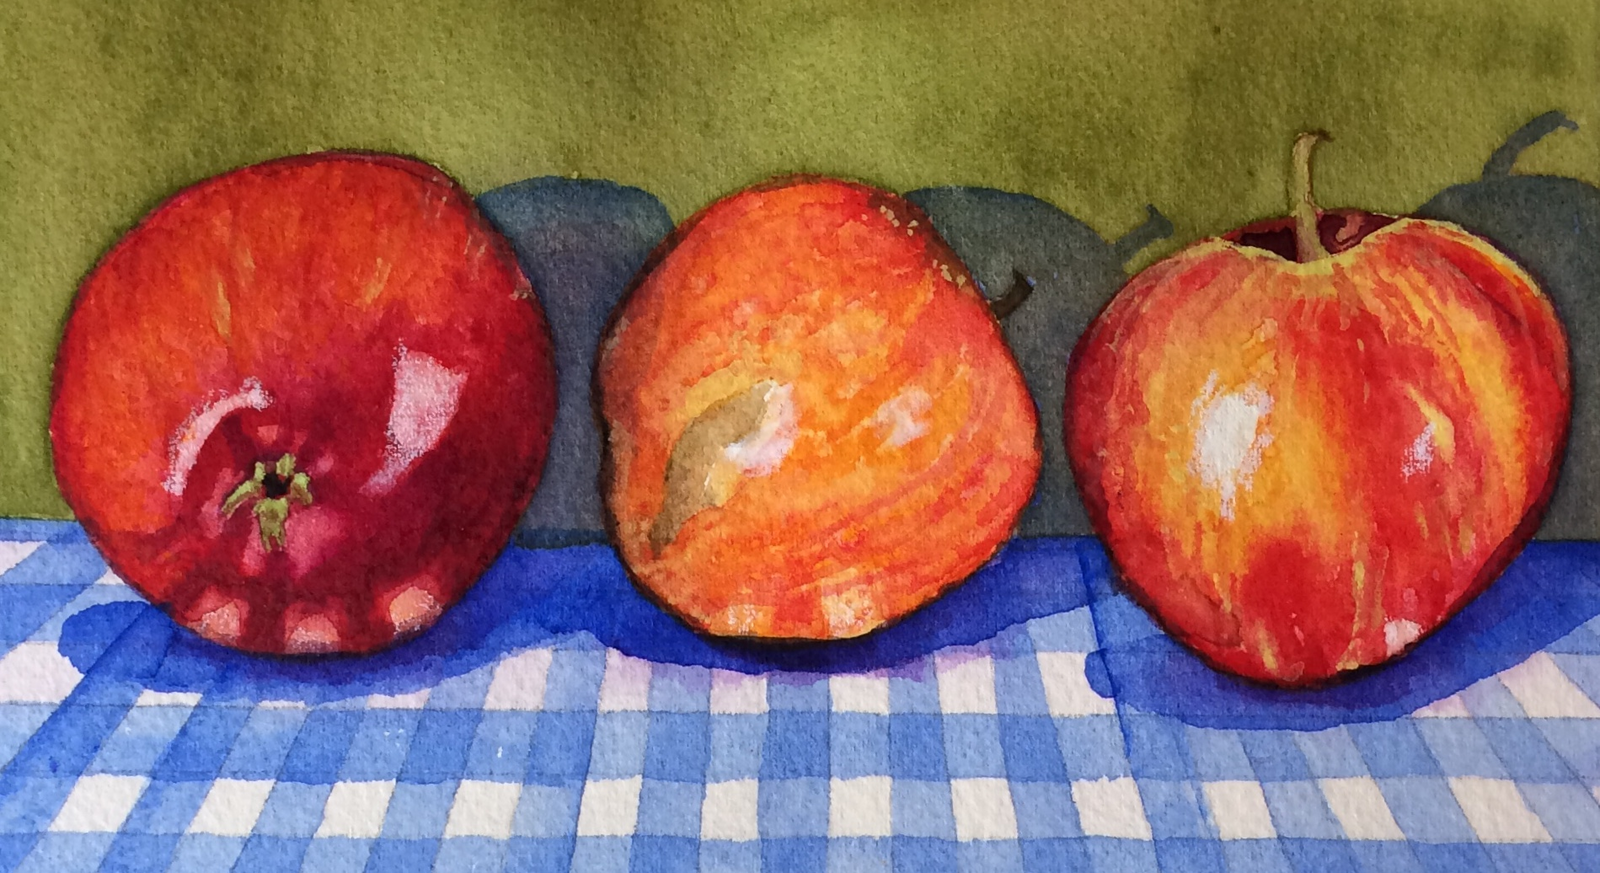 Apples - sold